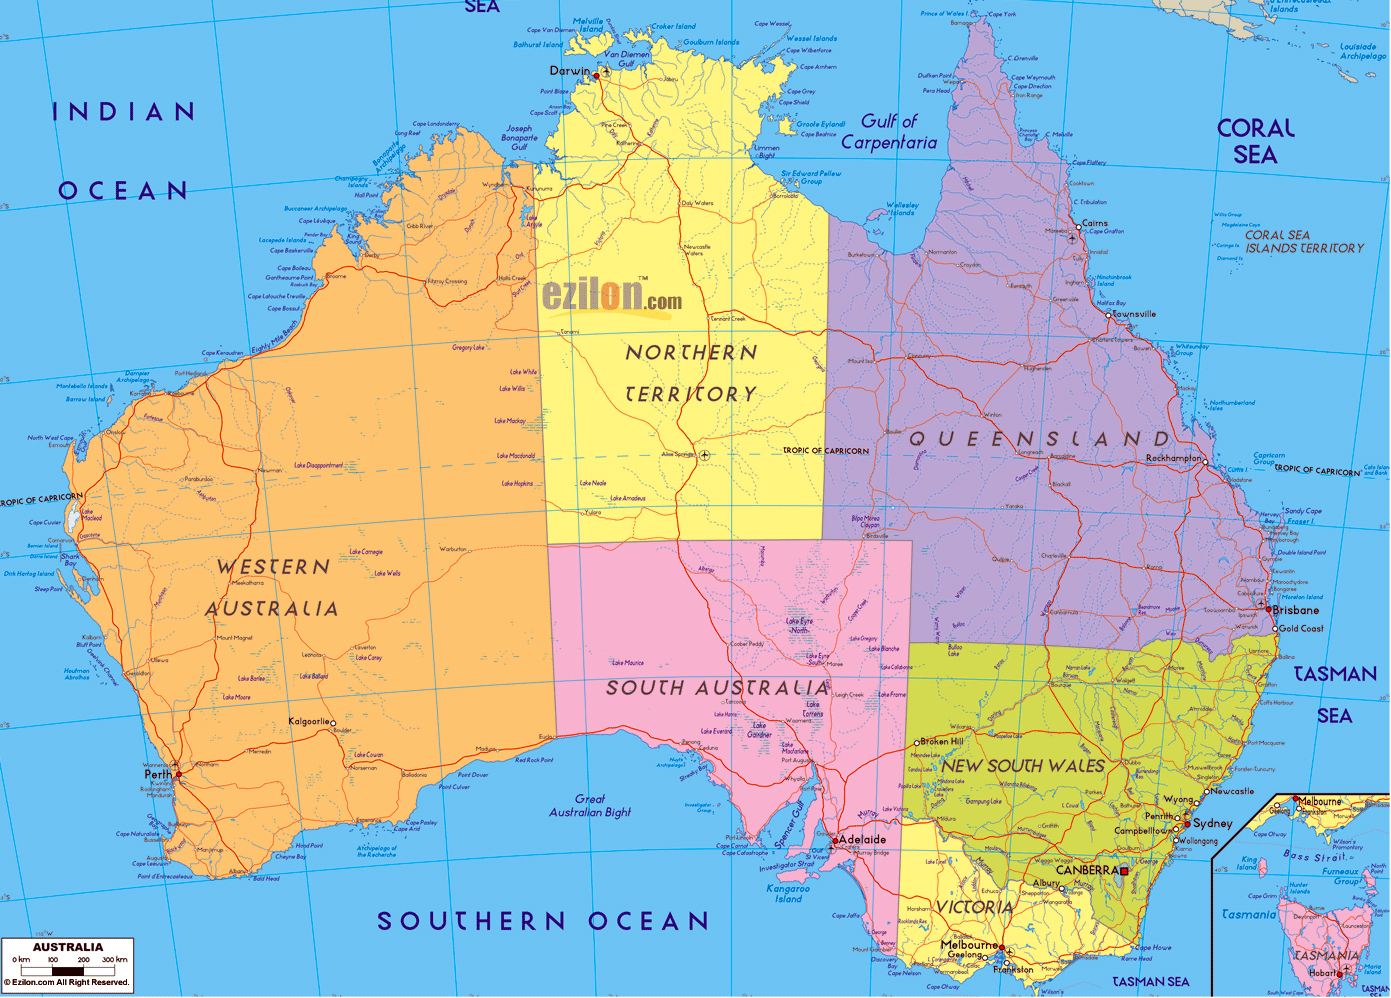 Large Map Of Australia.Large Detailed Administrative Map Of Australia Australia Large